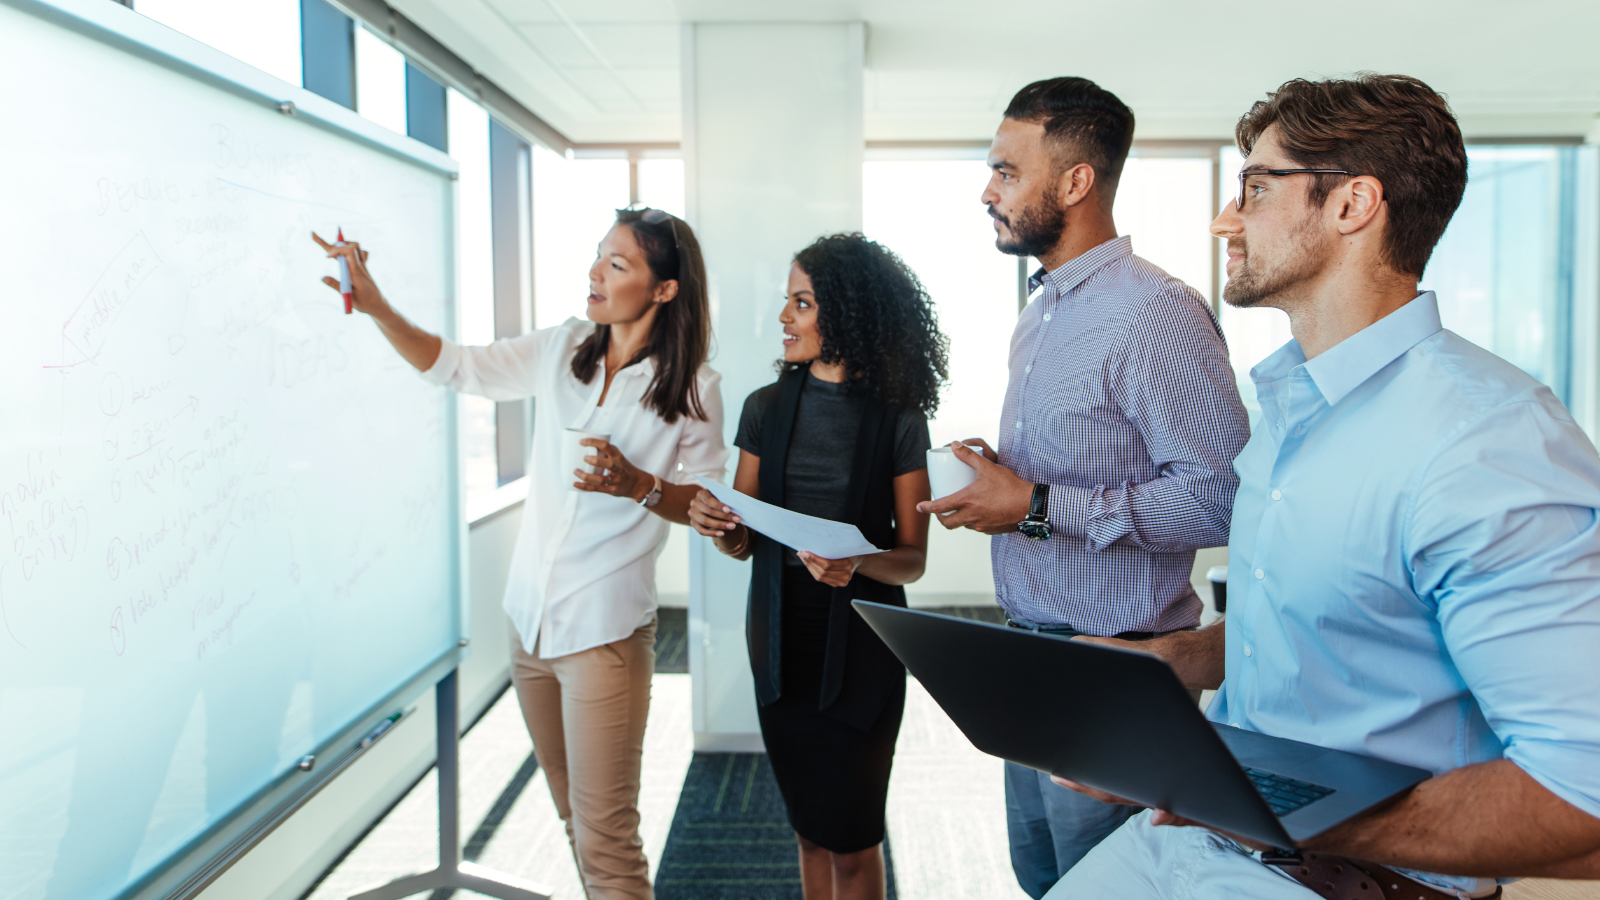 business team reviewing plan on white board